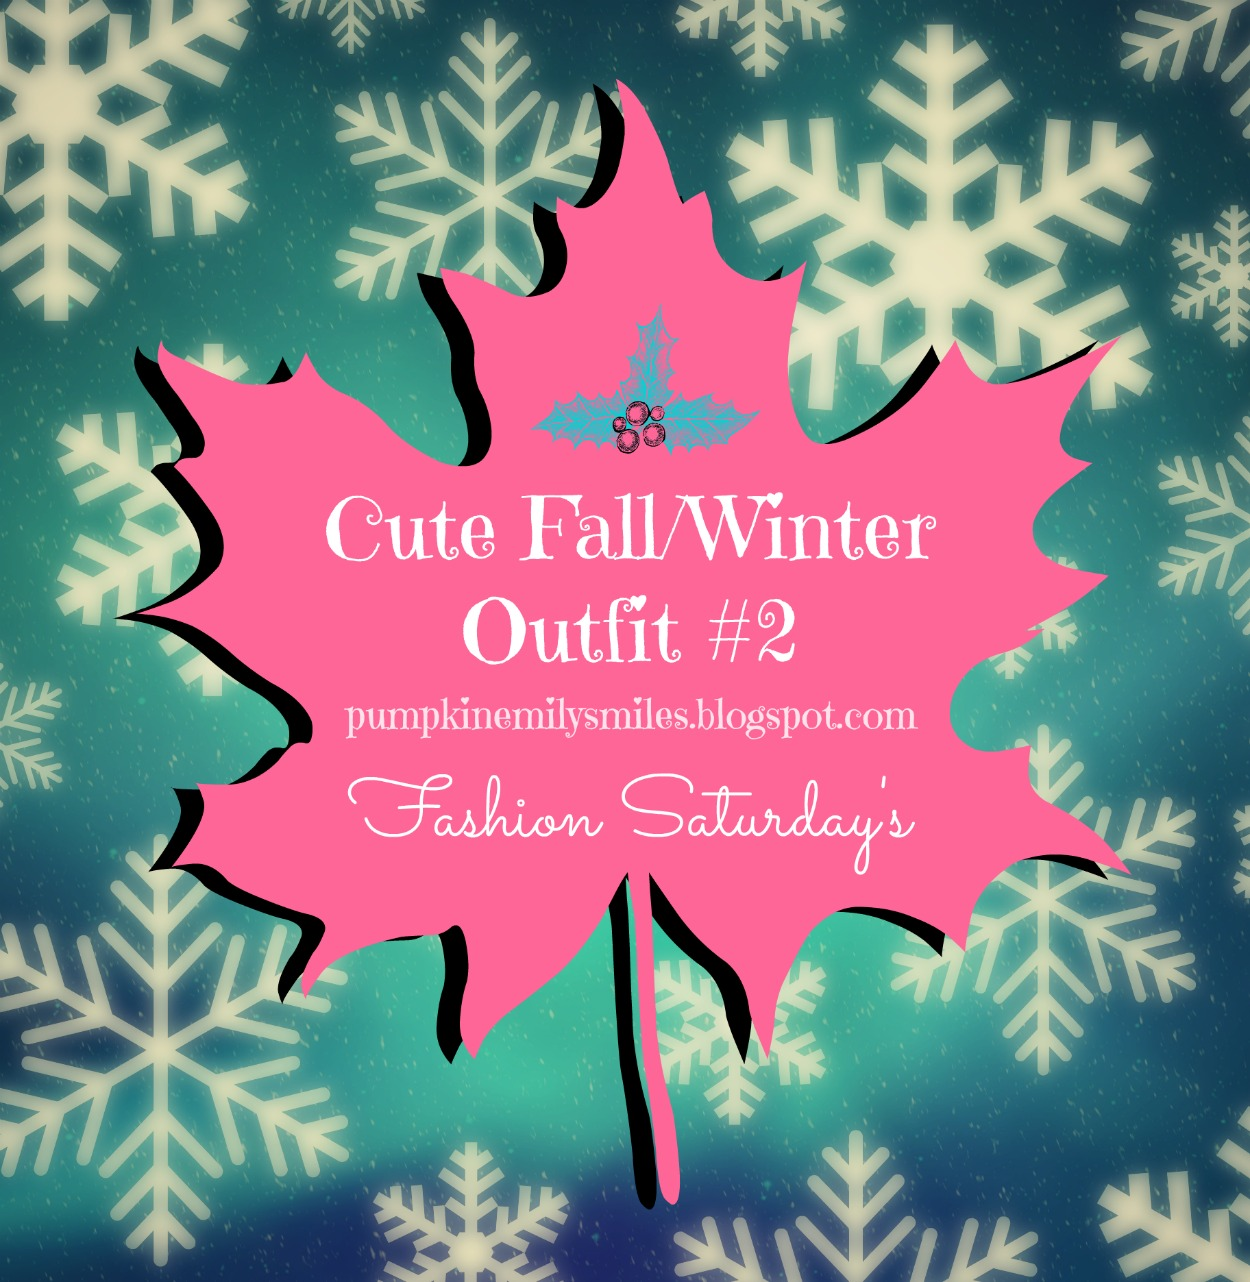 Cute Fall/Winter Outfit #2 Fashion Saturday's